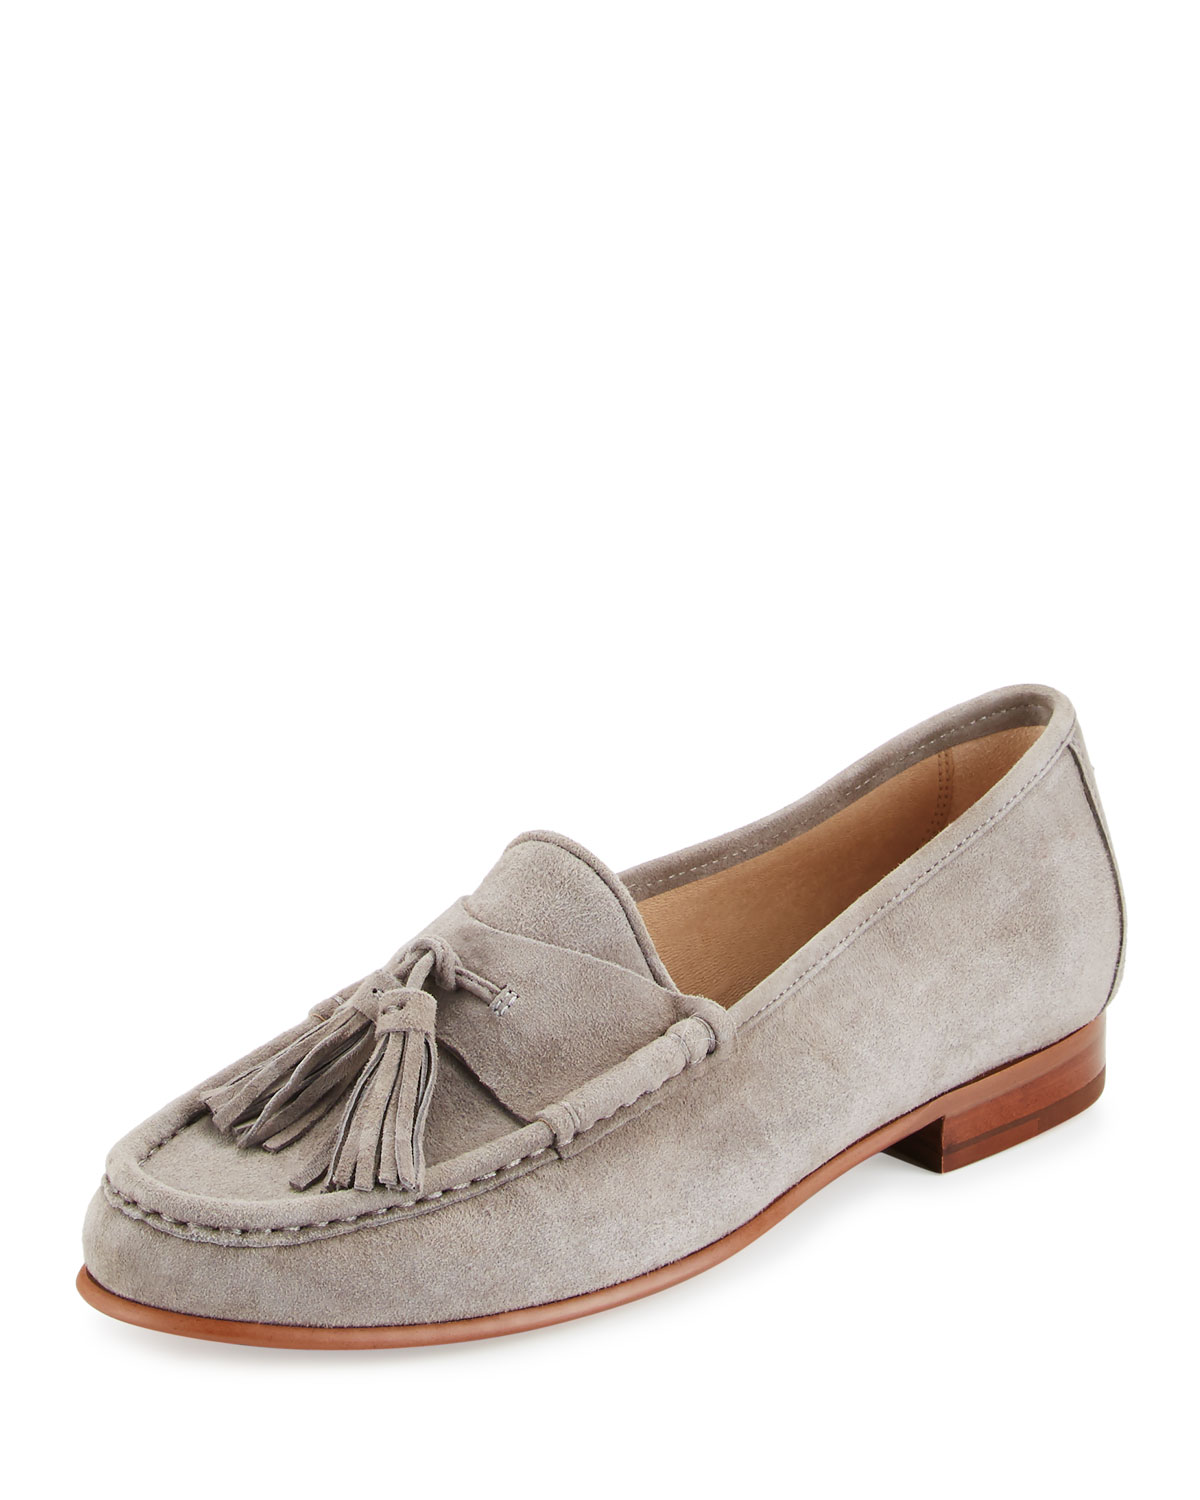 606452b651815a Sam Edelman Therese Suede Tassel Loafer